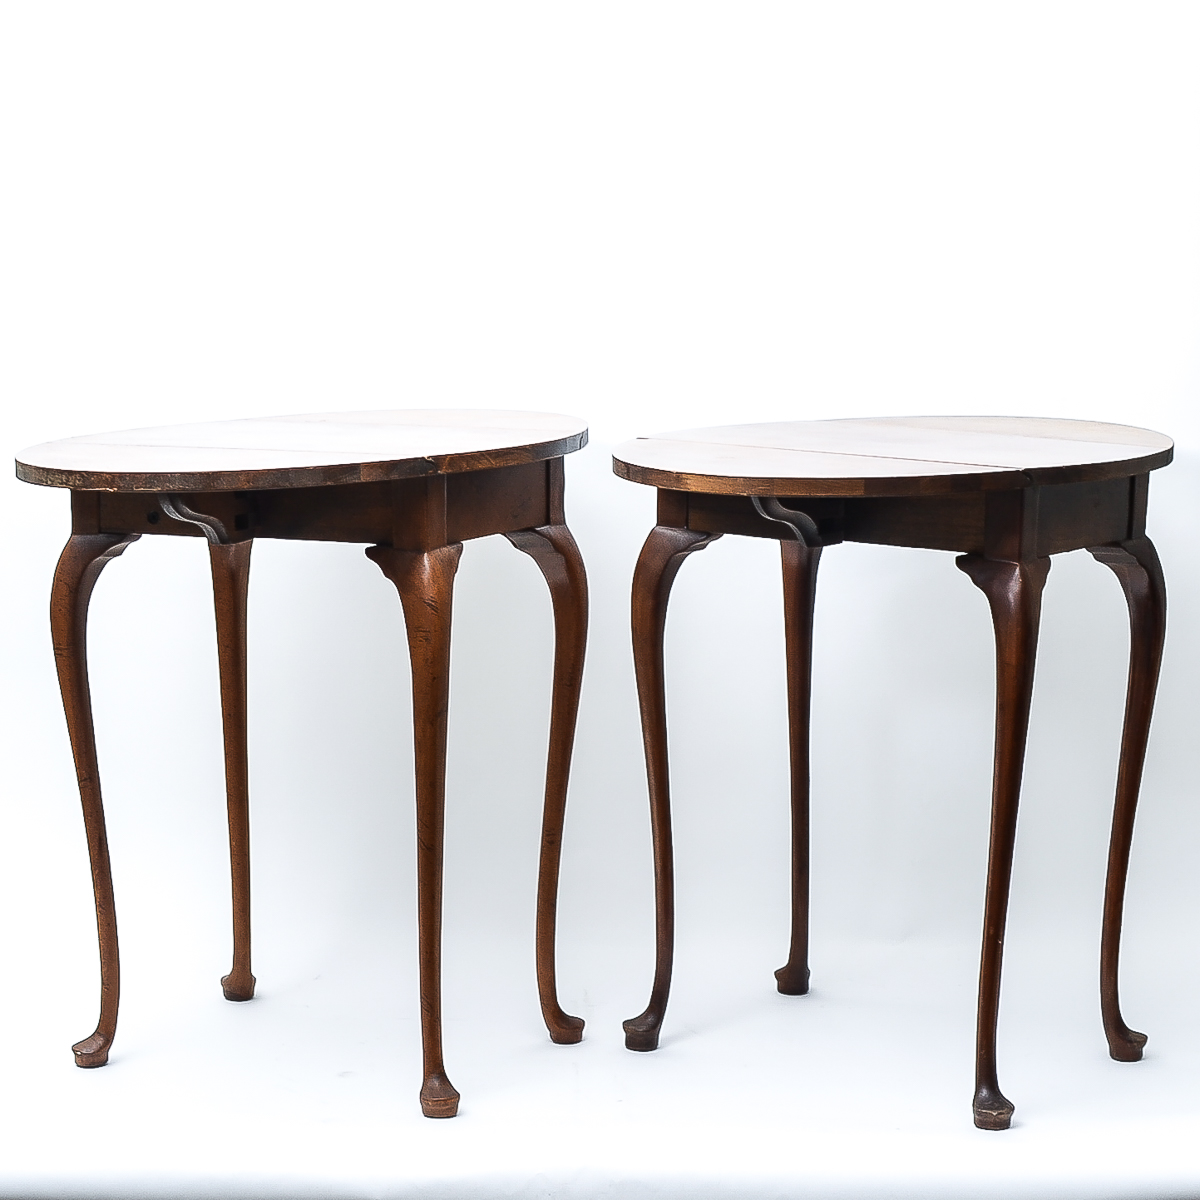 Queen Anne Style DropLeaf Side Tables by Baker Furniture EBTH